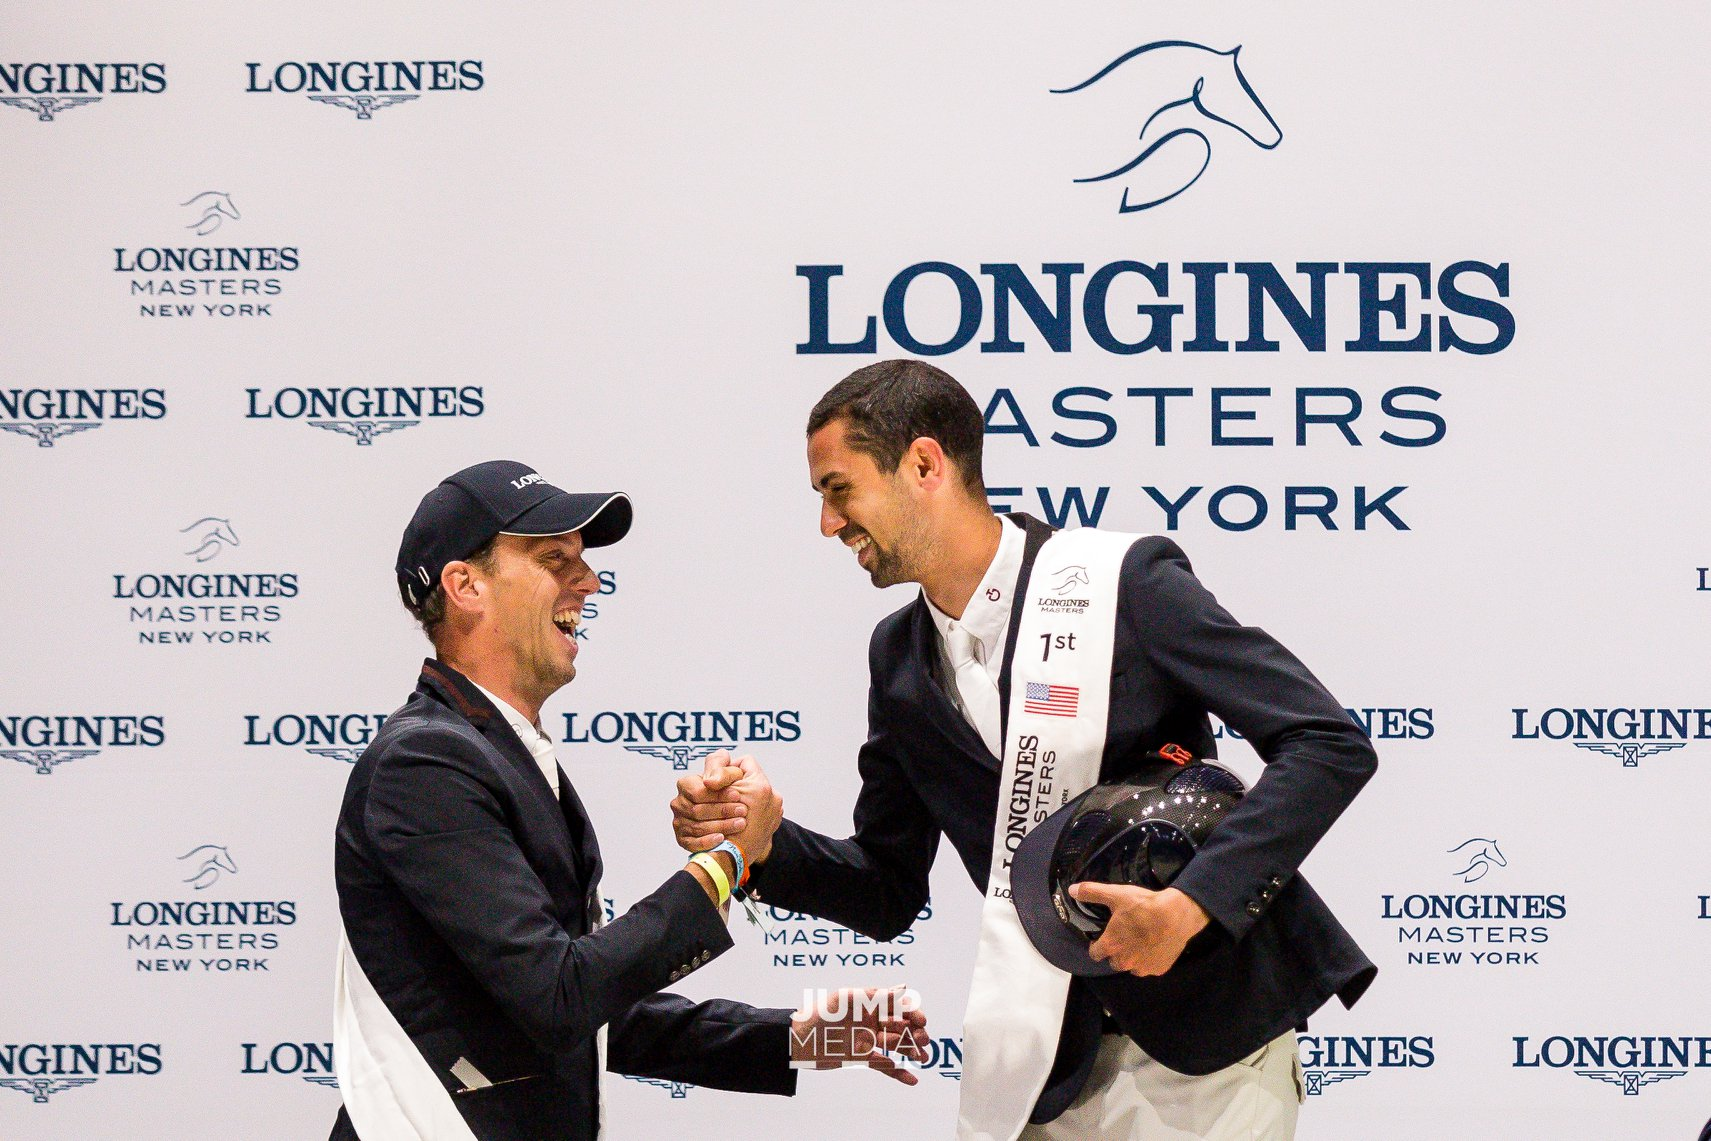 Harrie Smolders and Nayel Nassar at Longines Masters of New York 2019. Photo by Jump Media LLC.